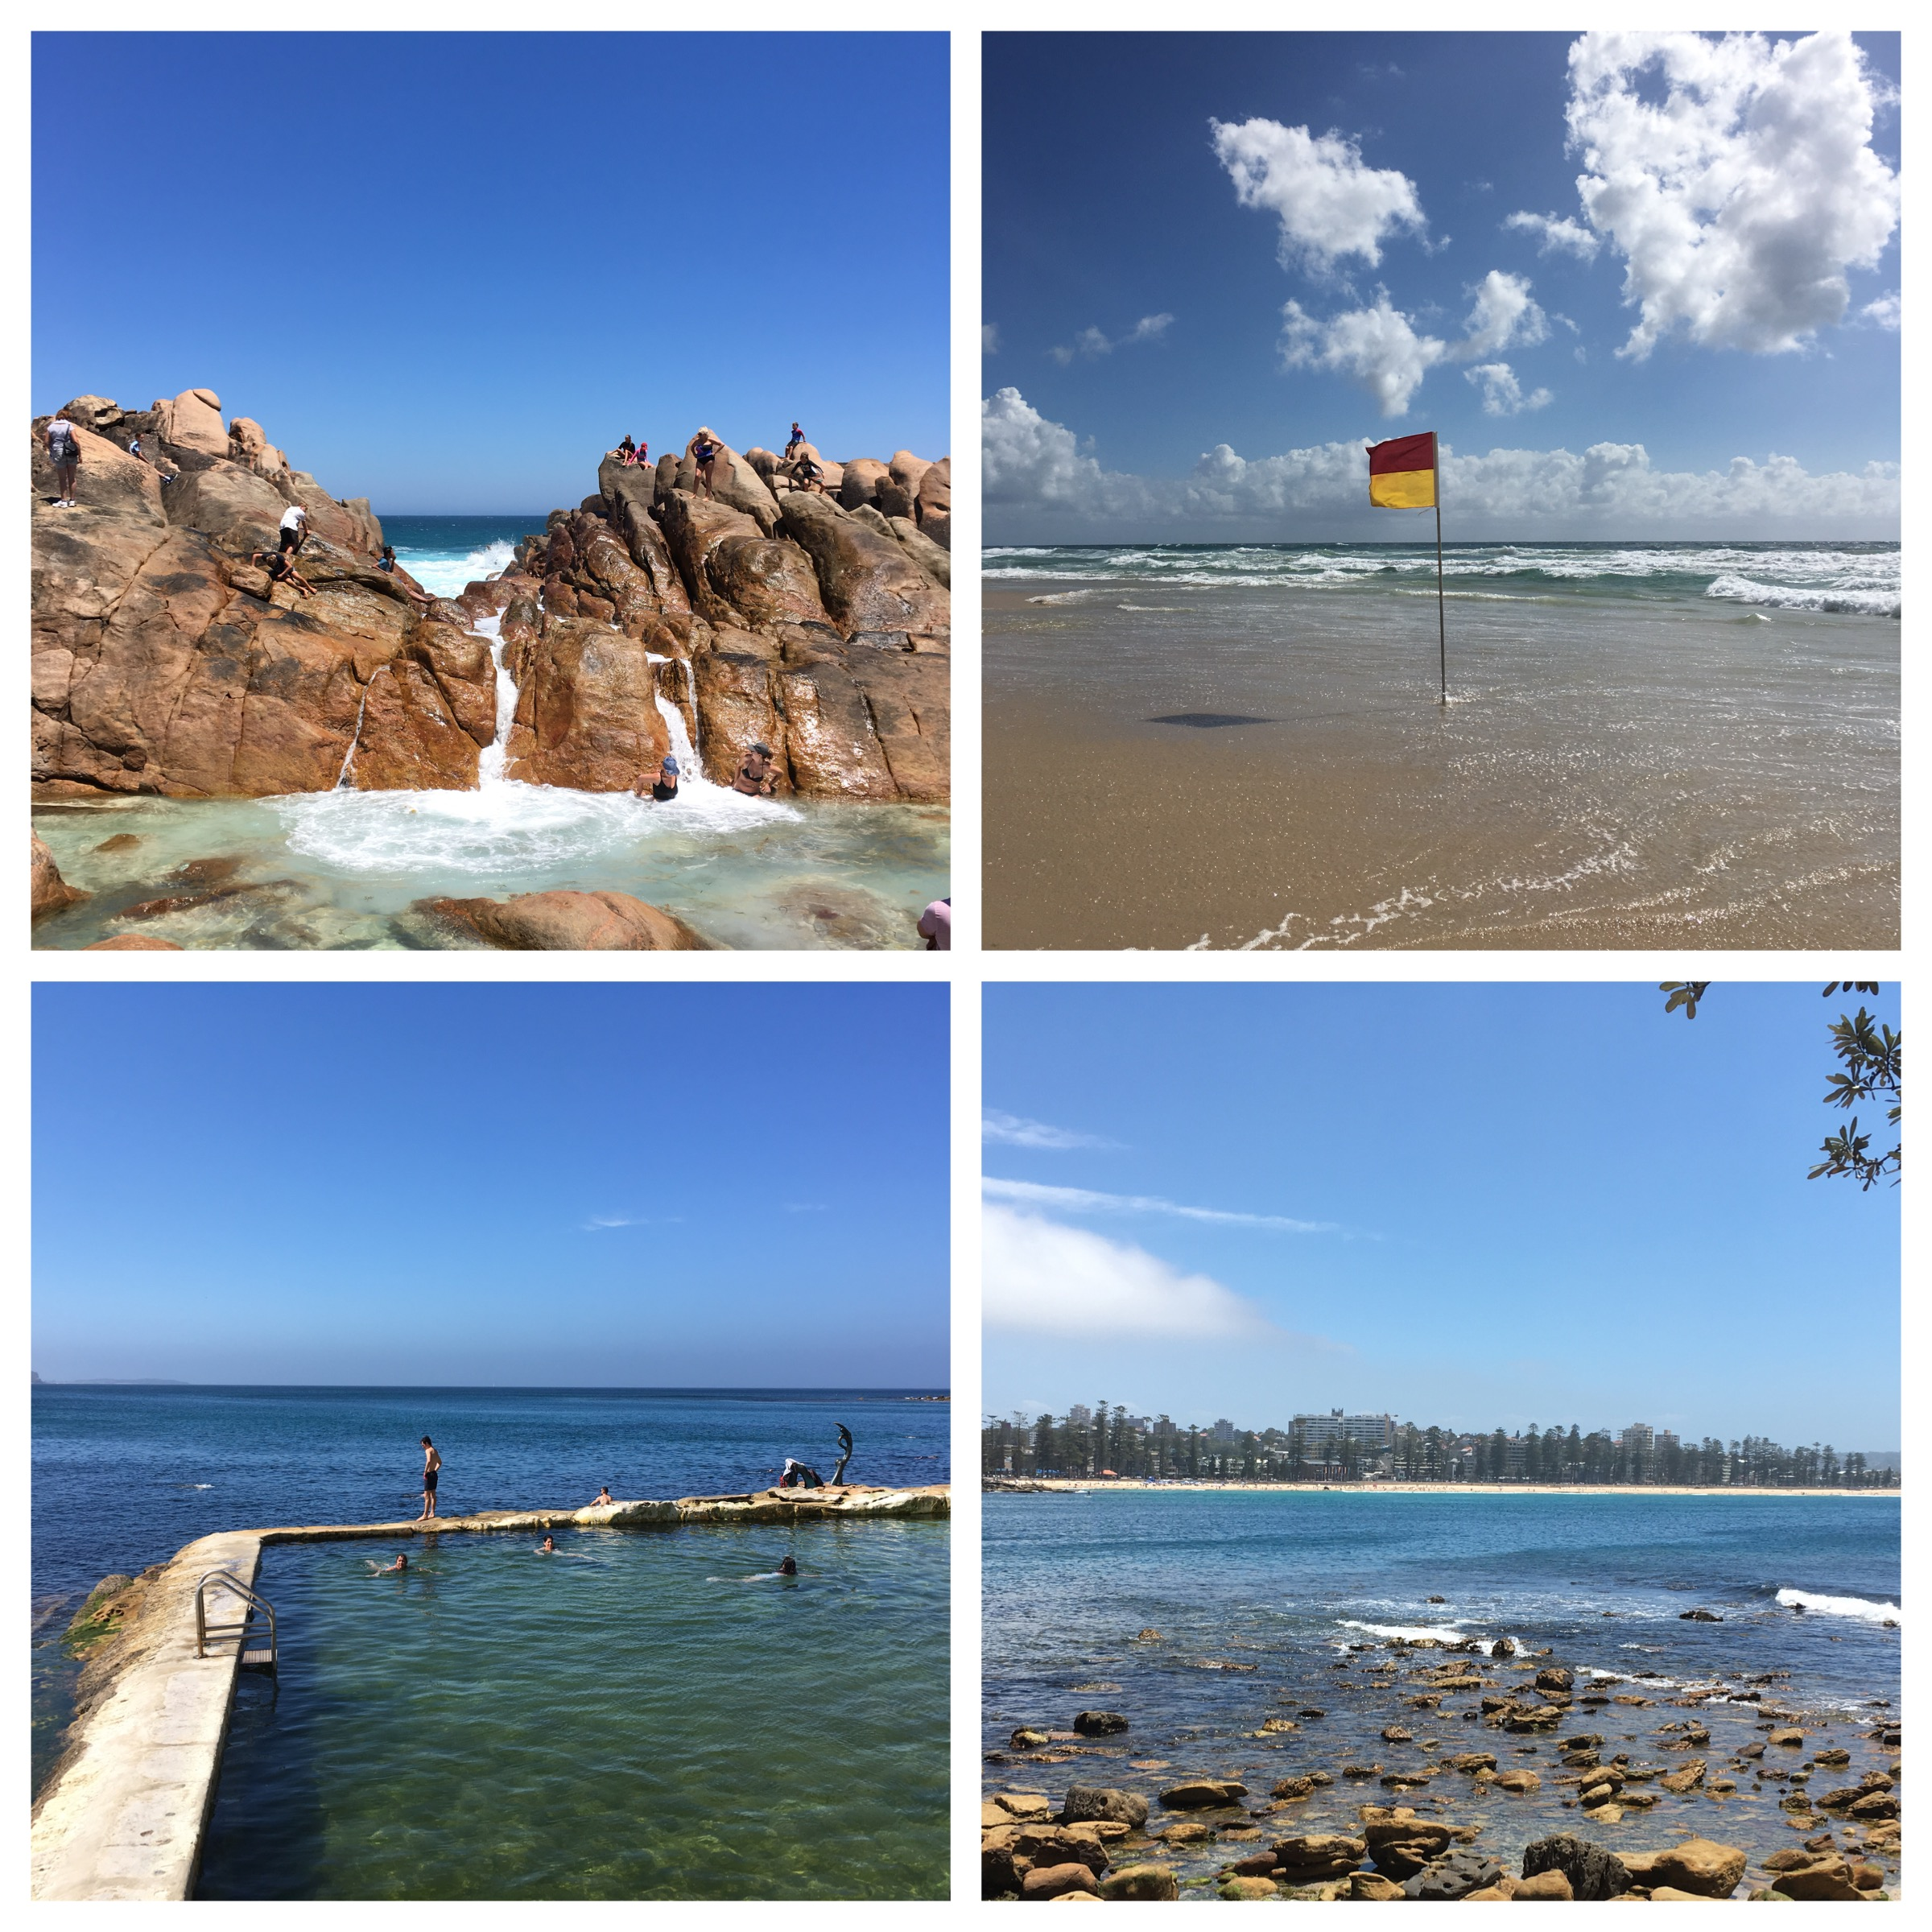 Top left and clockwise: Dunsborough, Surfer's Paradise, Manly and Cabbage Tree Bay